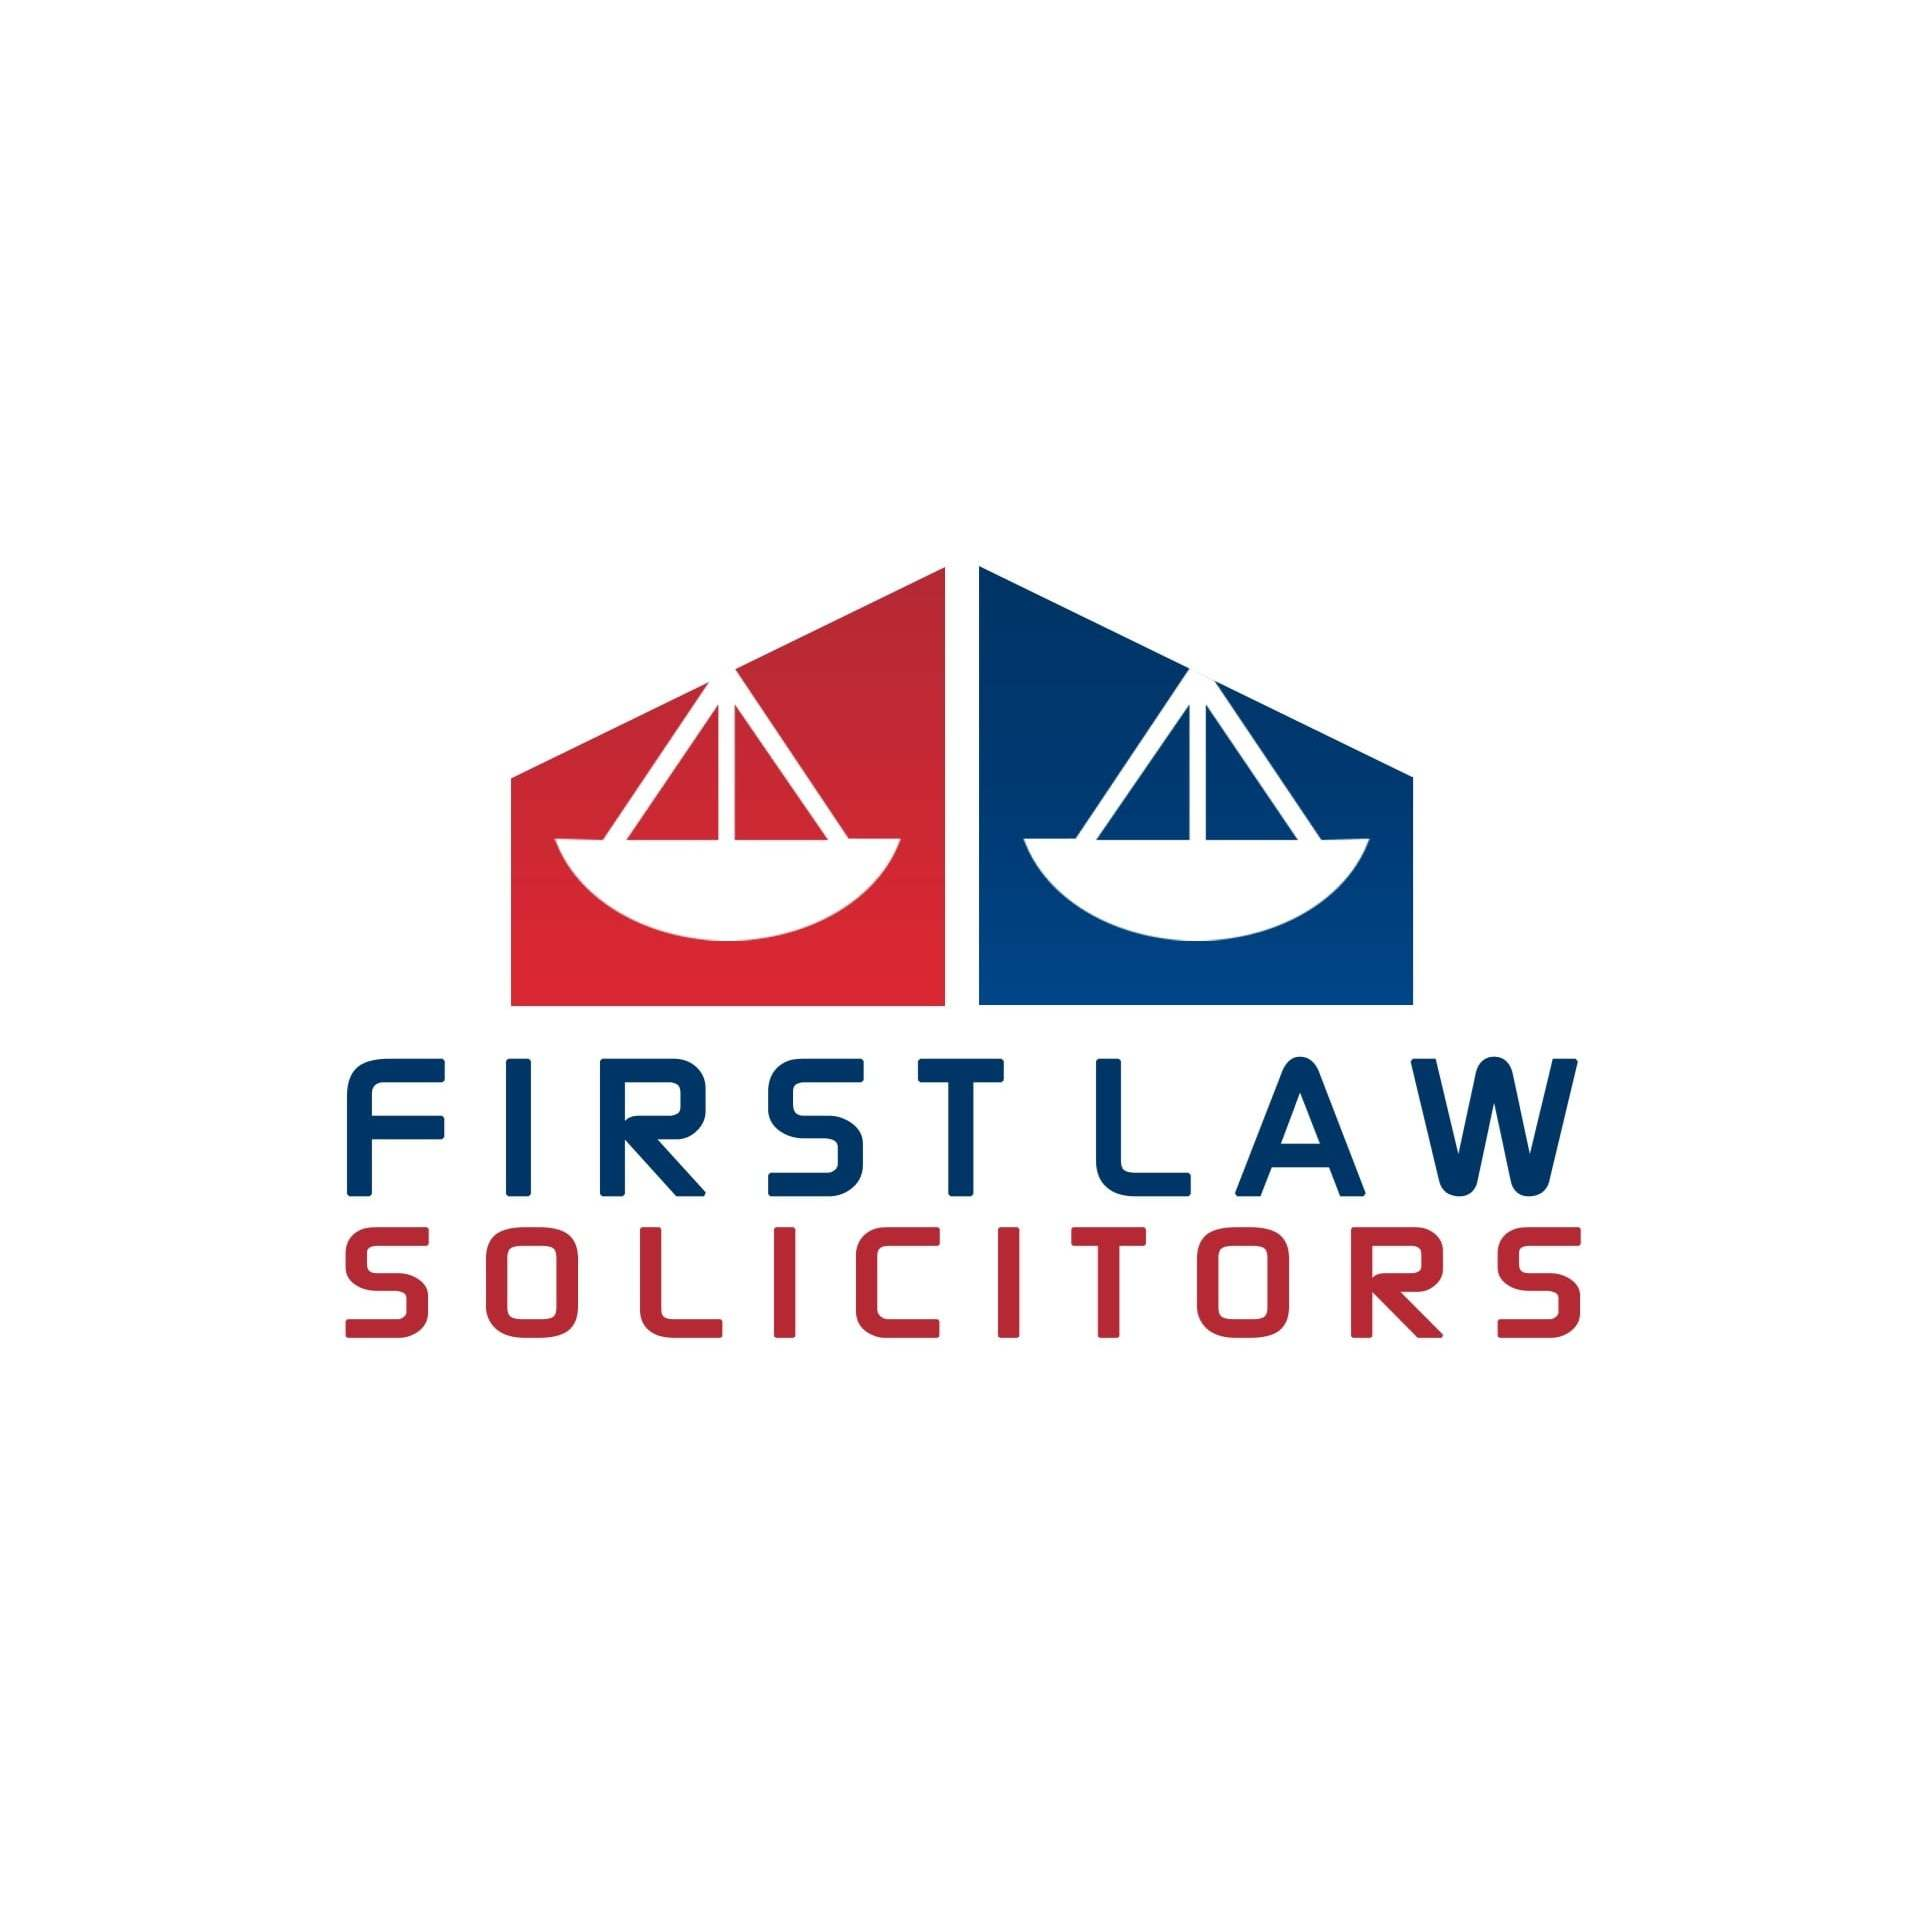 First Law Solicitors - Manchester, Lancashire M13 0SH - 01612 244066 | ShowMeLocal.com